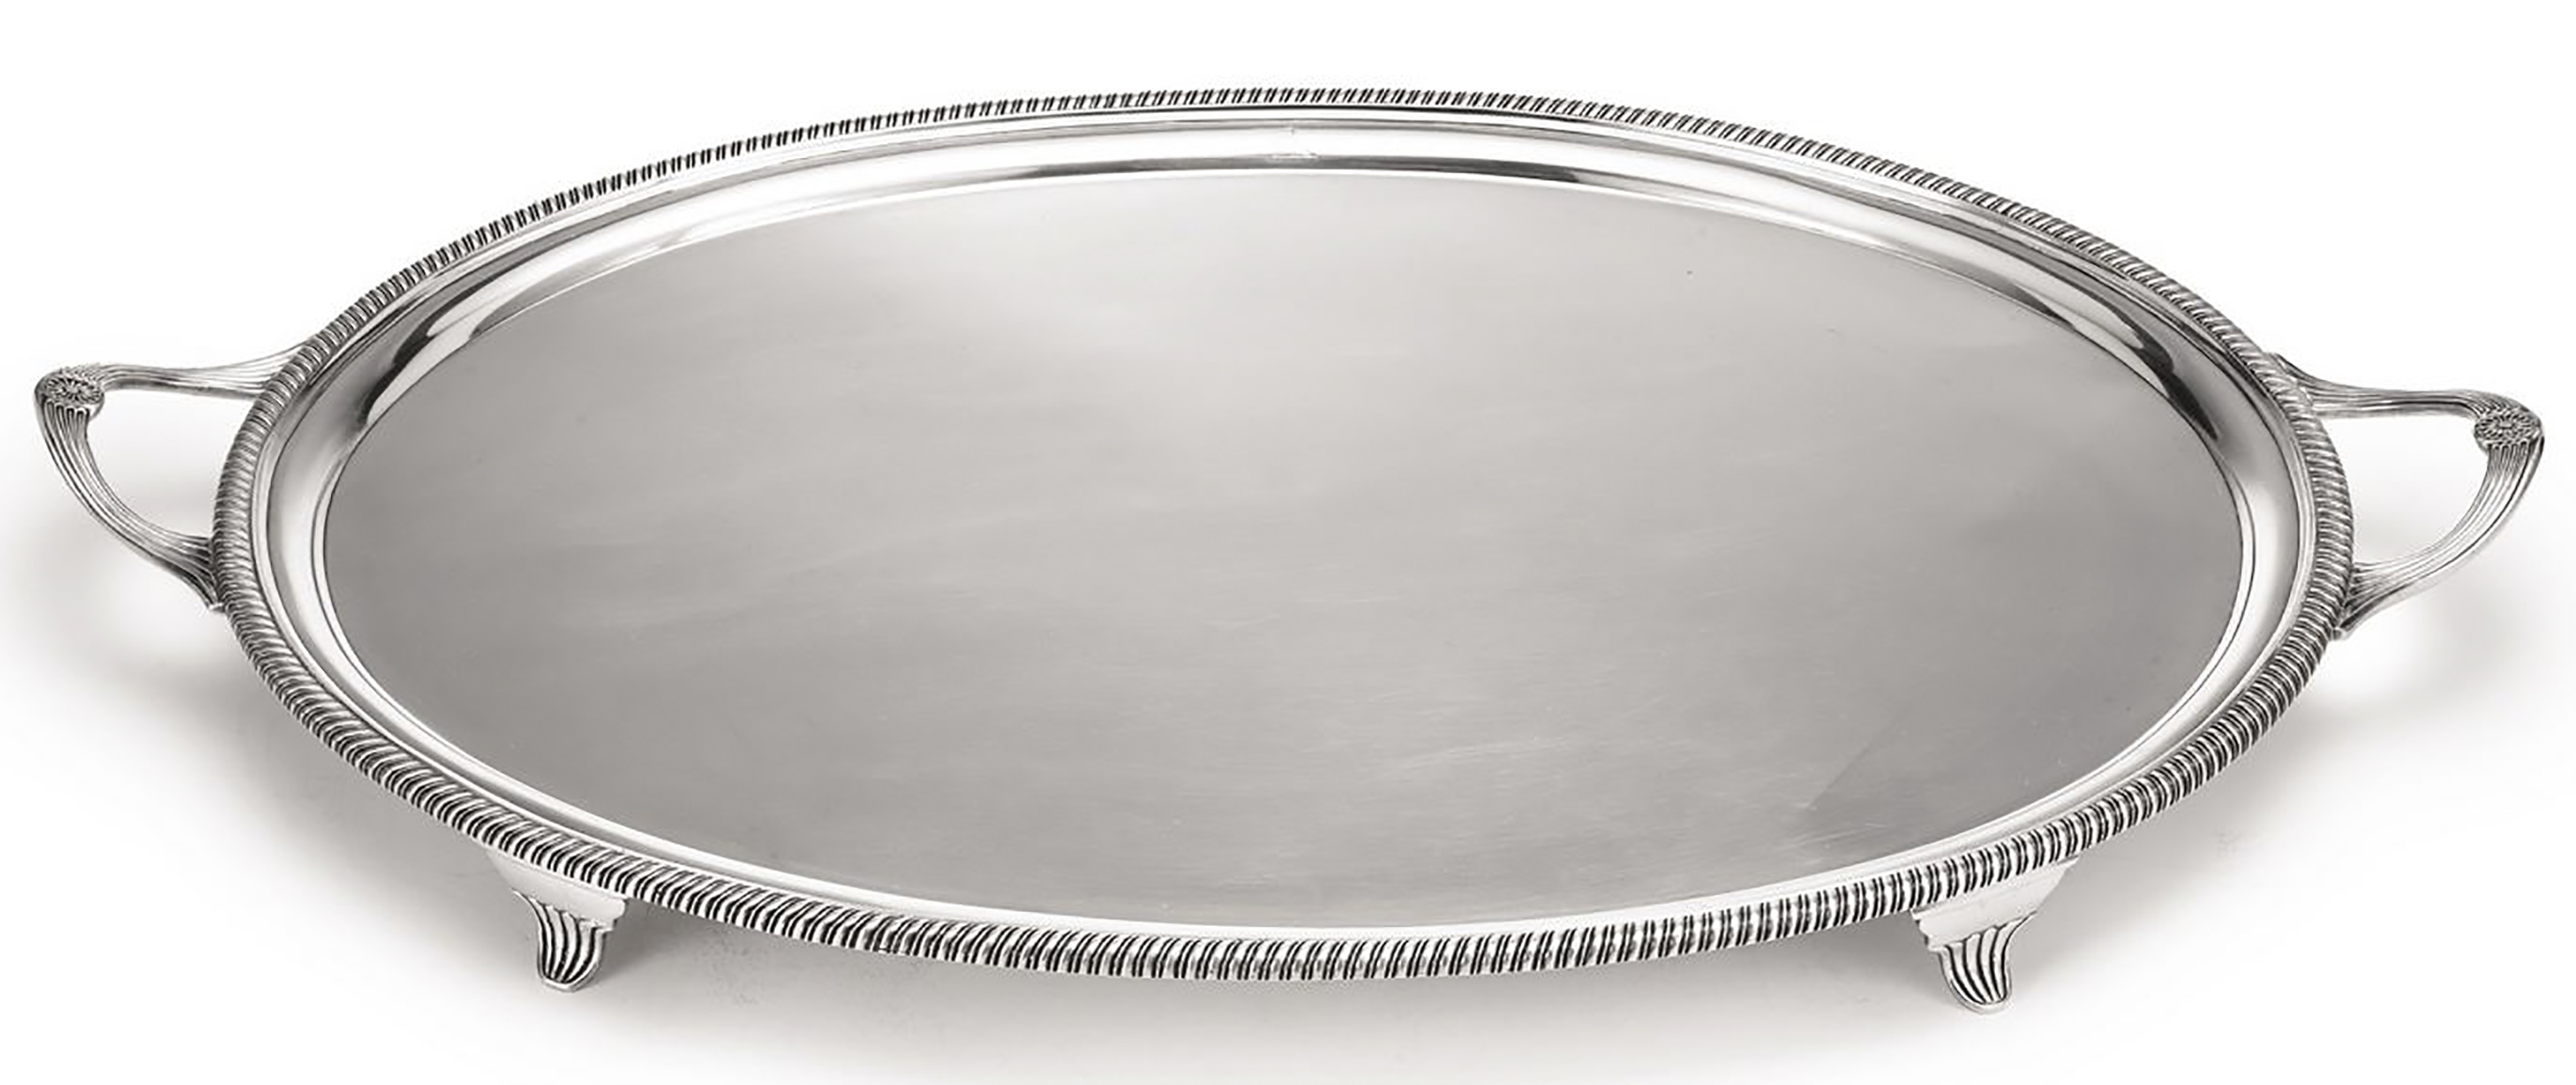 Lot Detail Silver Tray In The King George Iii Style By